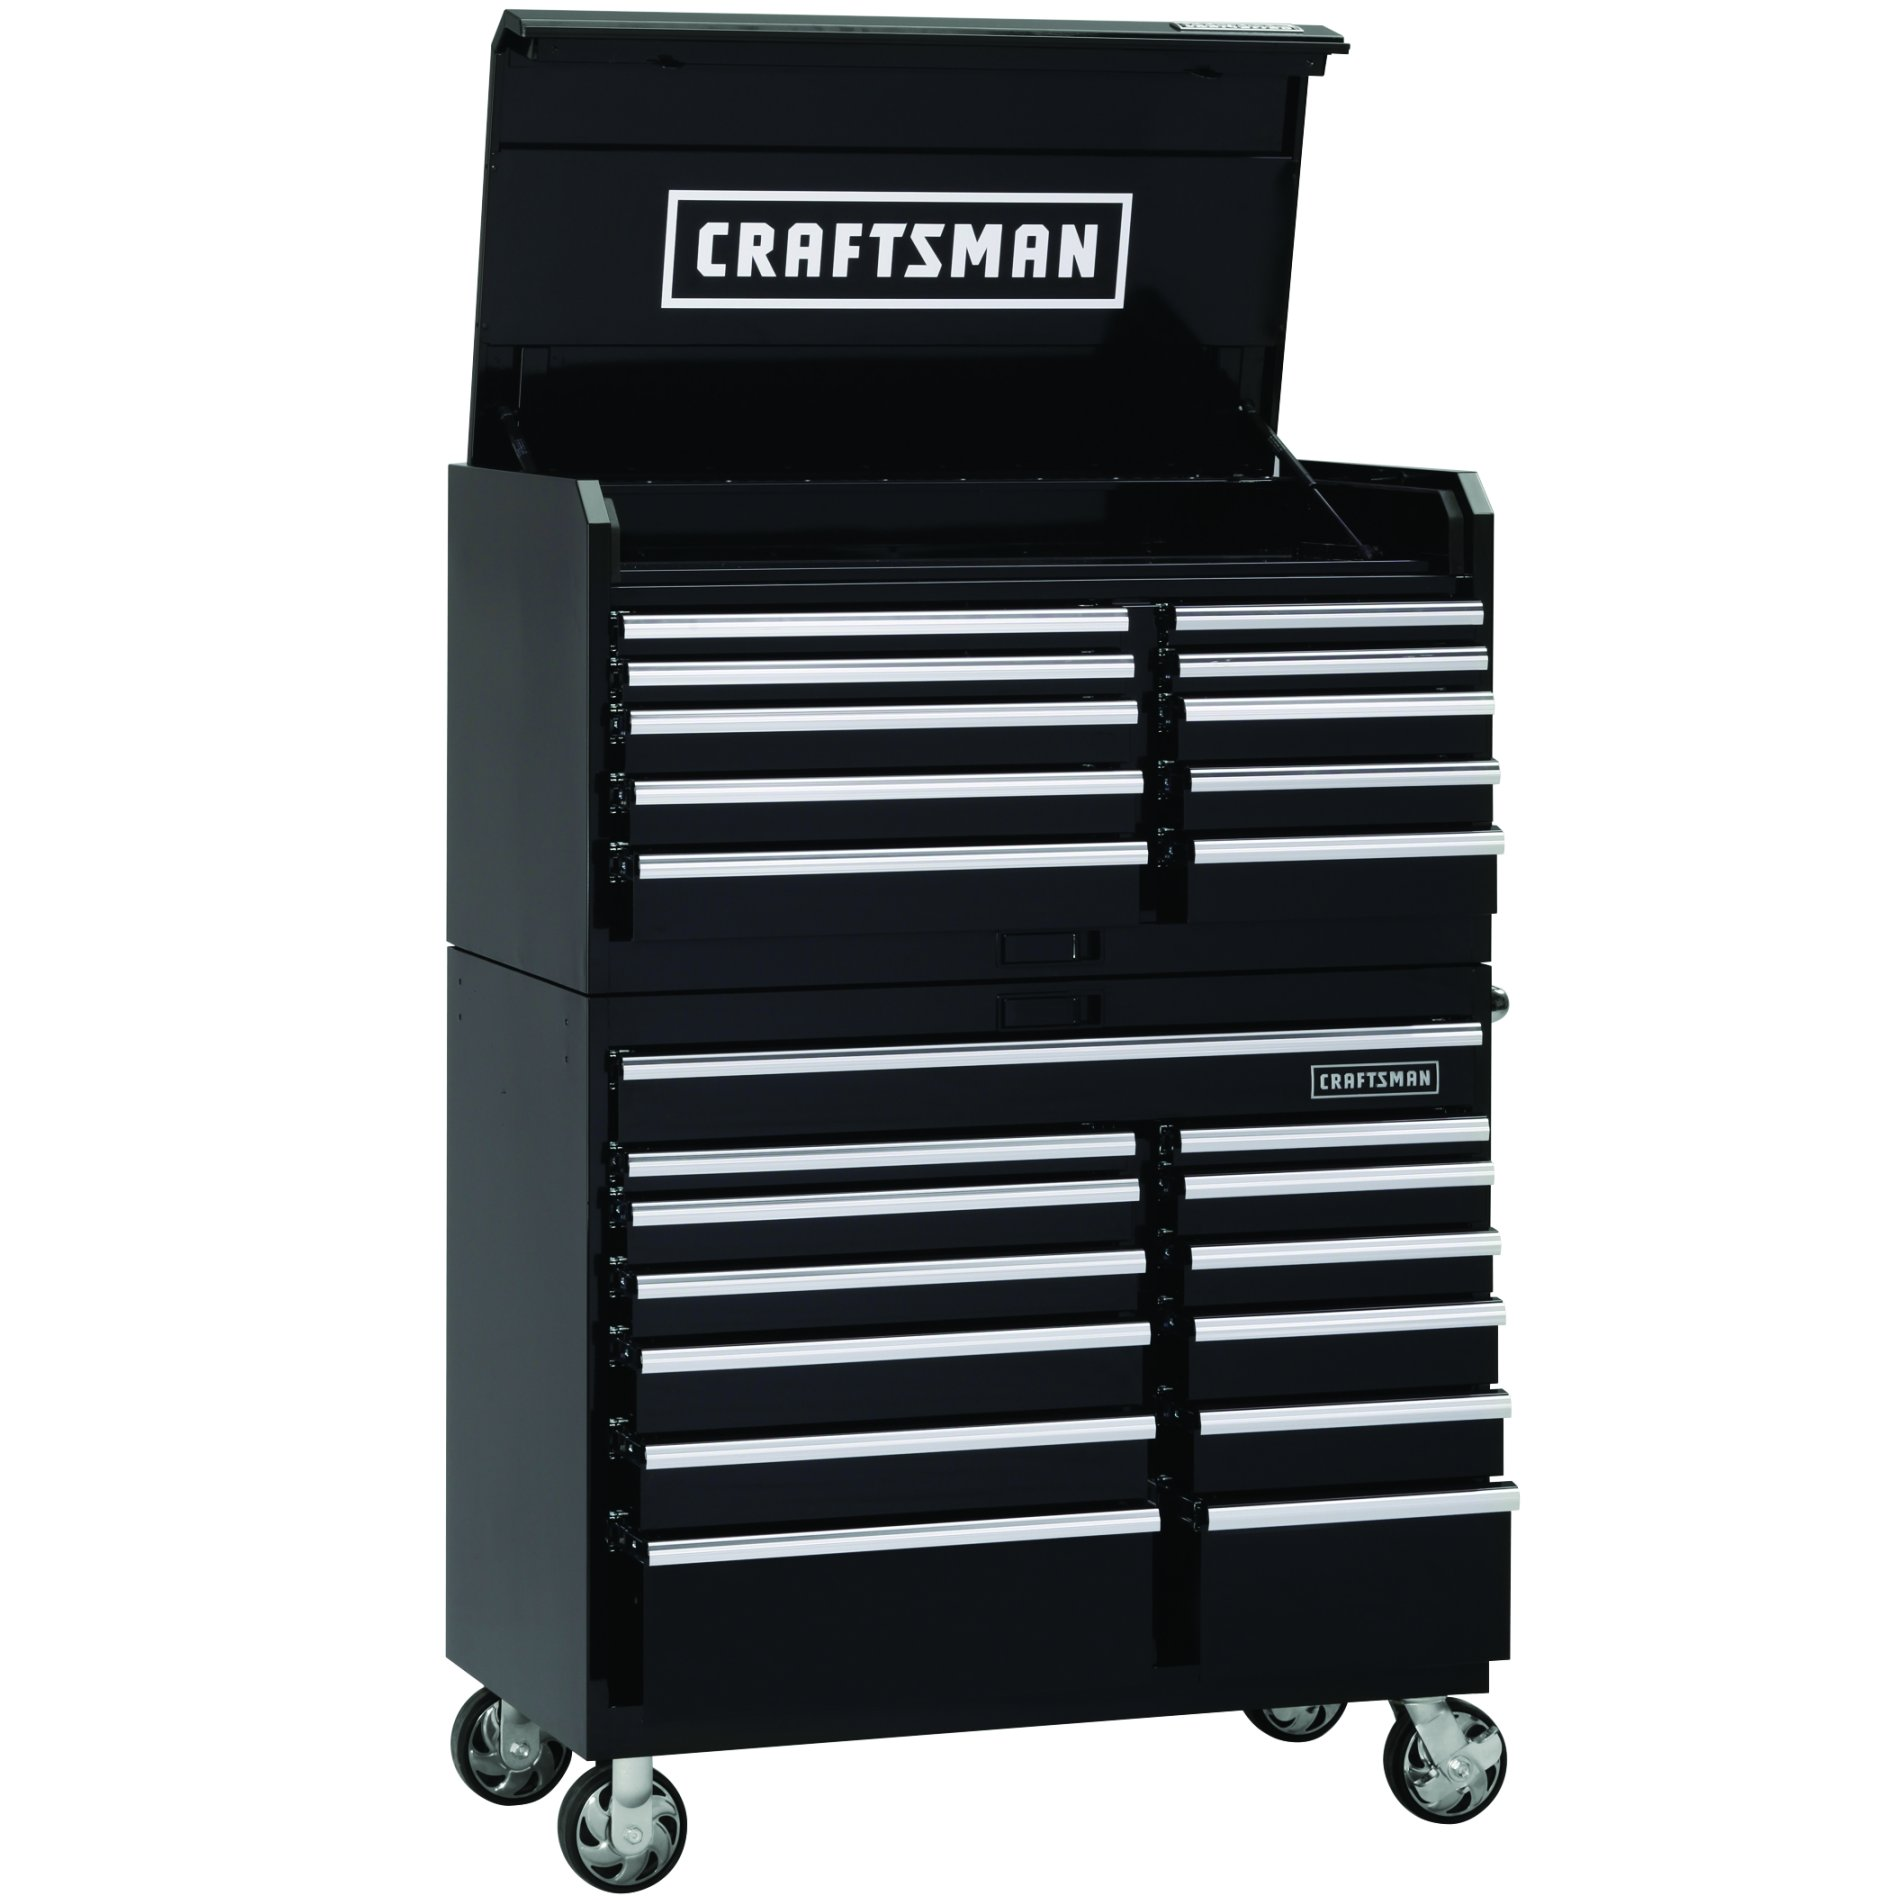 "Craftsman 46"" Wide 10-Drawer Industrial Grade Top Chest"